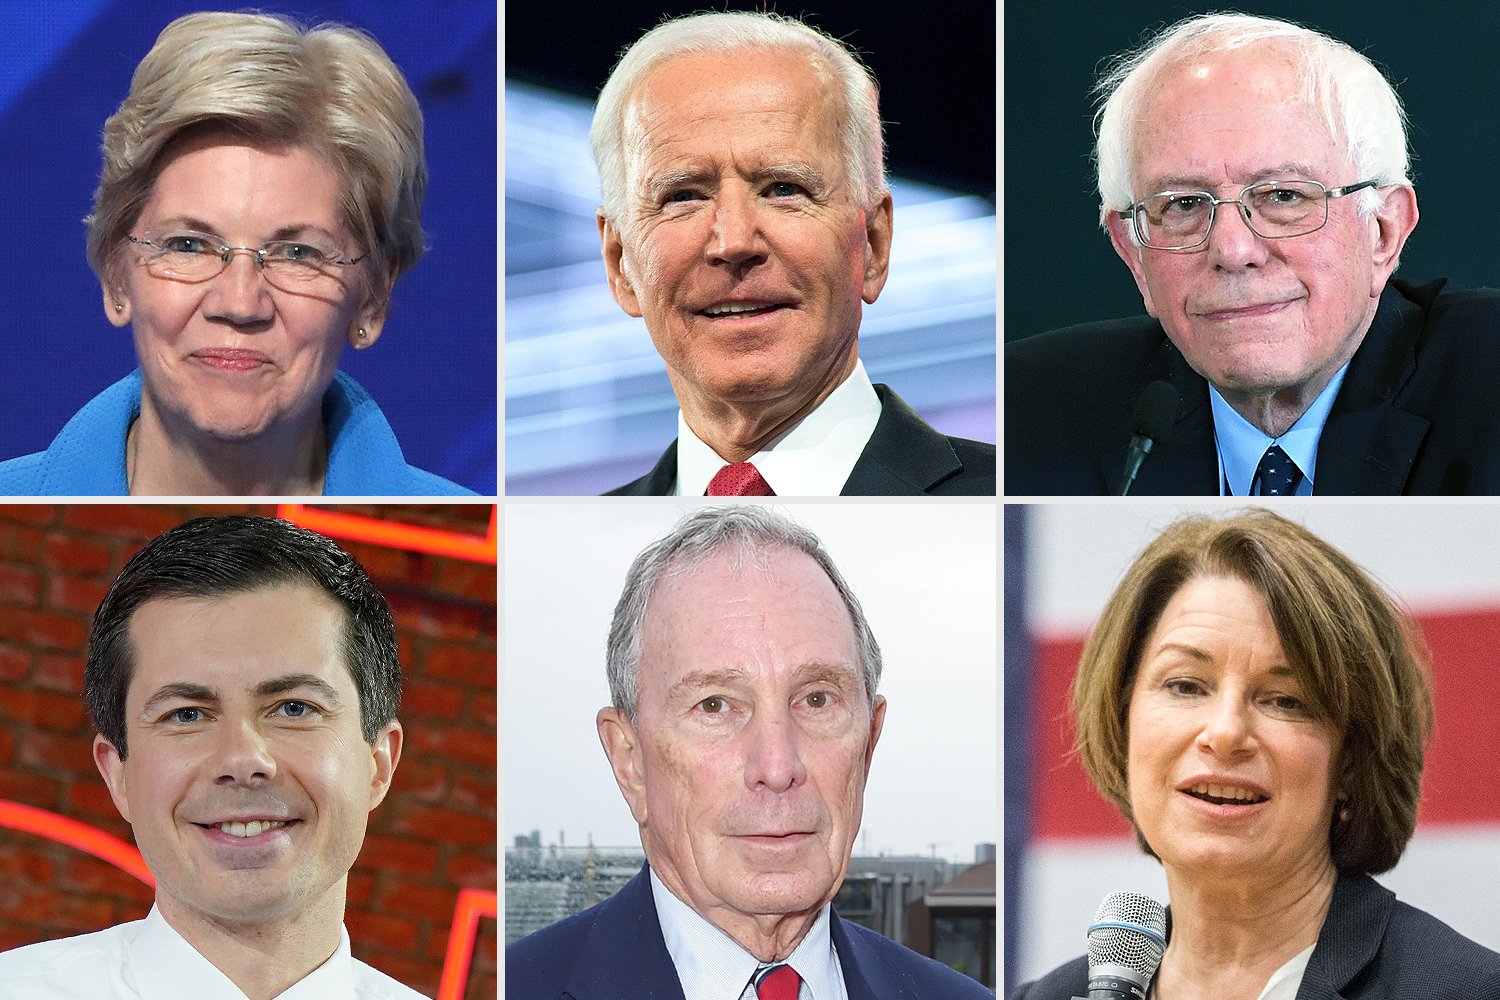 Elizabeth Warren, Joe Biden, Bernie Sanders, Pete Buttigieg, Mike Bloomberg, Amy Klobuchar